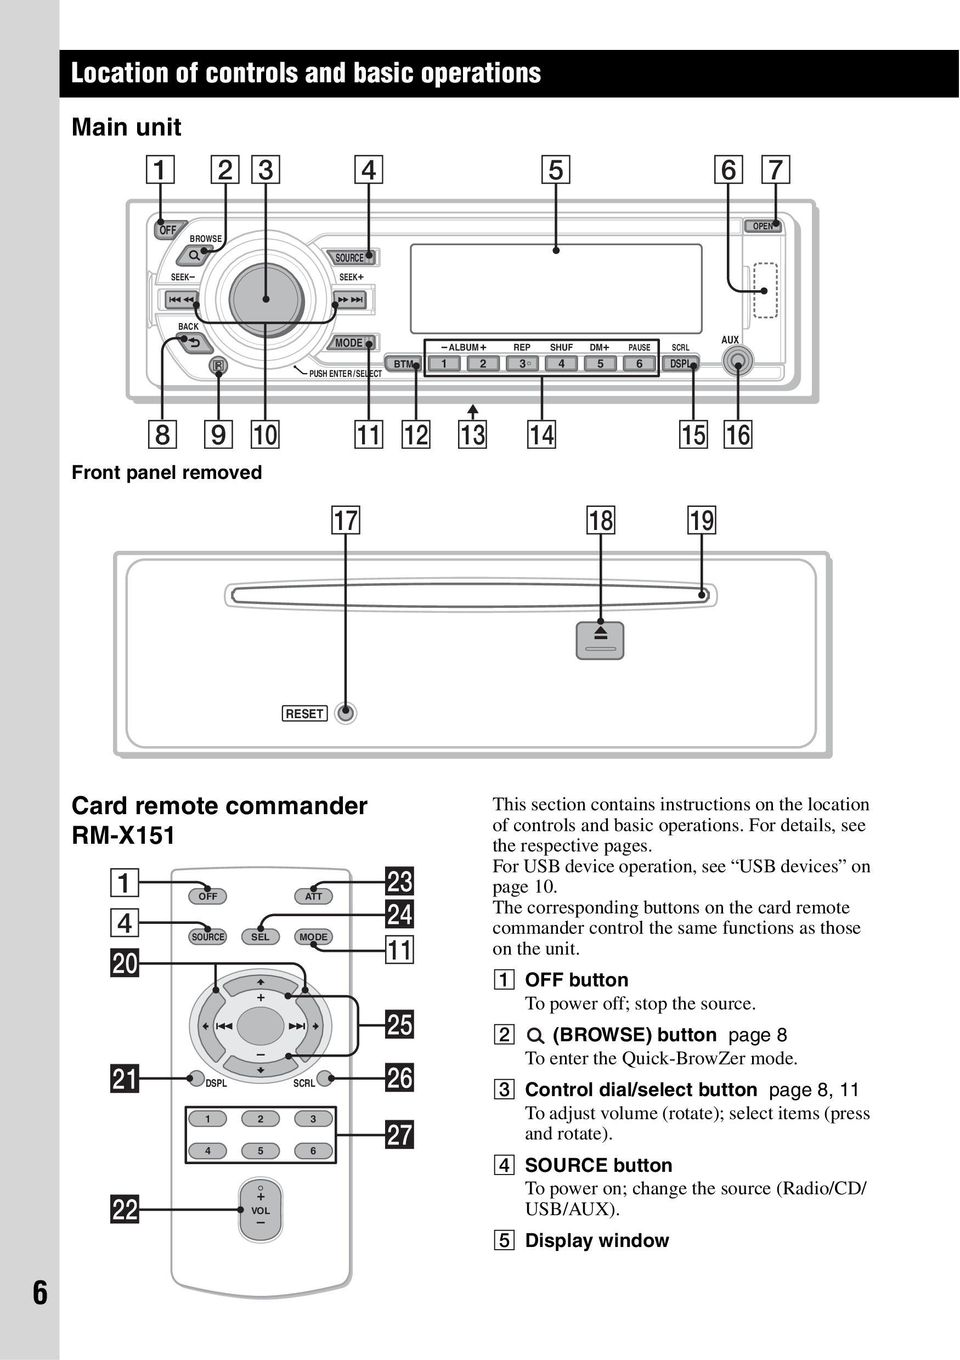 the location of controls and basic operations. For details, see the respective pages. For USB device operation, see USB devices on page 10.